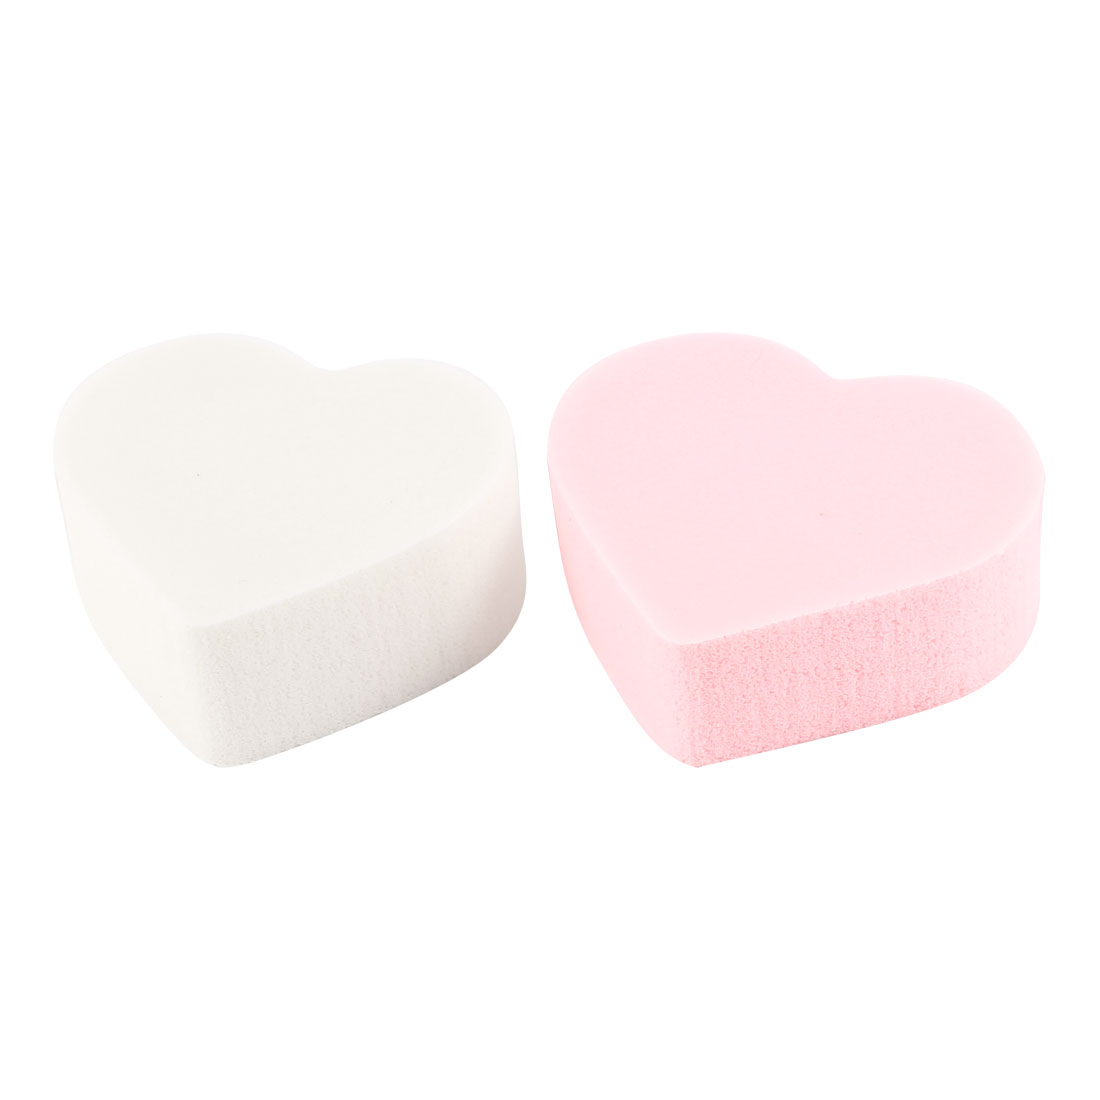 Ladies Pink White Heart Shape Sponge Makeup Powder Puffs 2 in 1